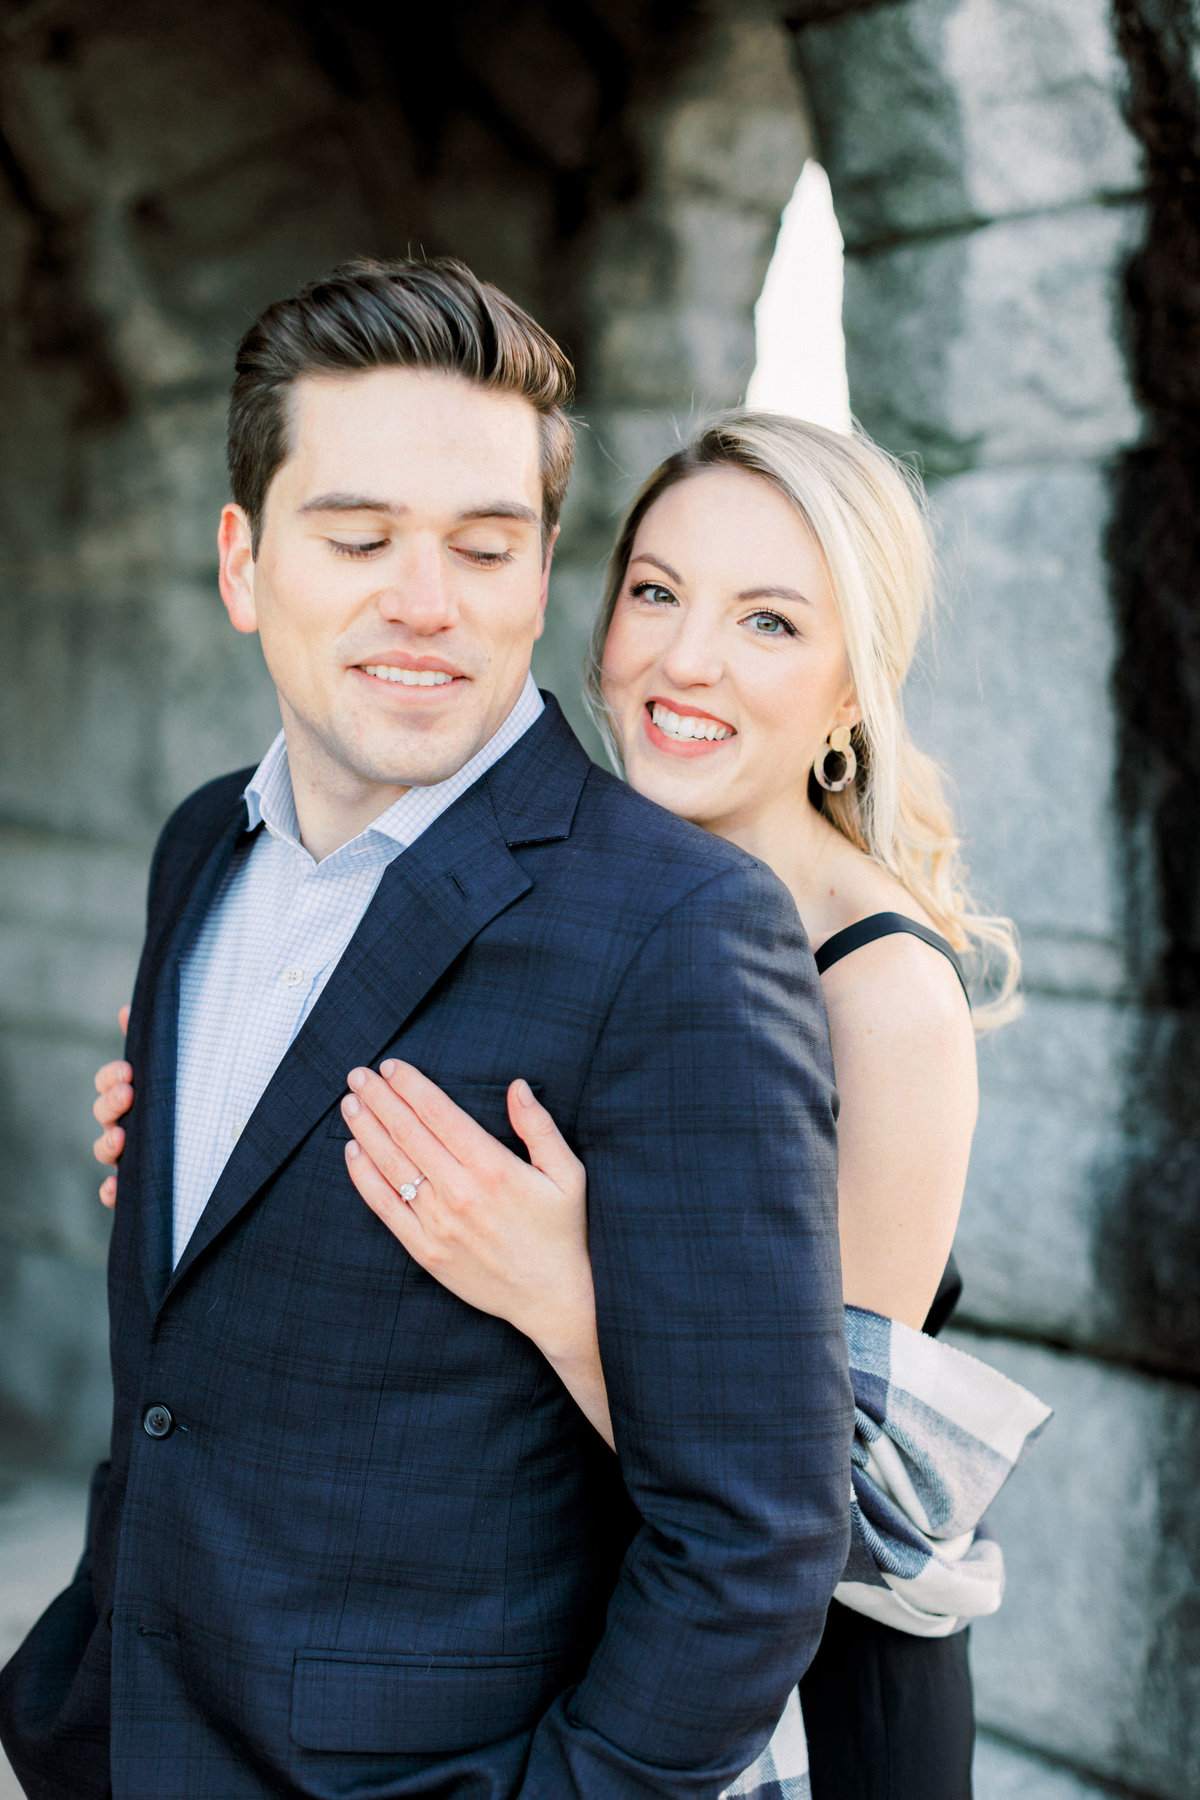 TiffaneyChildsPhotography-ChicagoWeddingPhotographer-AnneMarie+Connor-LincolnParkNatureBoardwalkEngagementSession-83